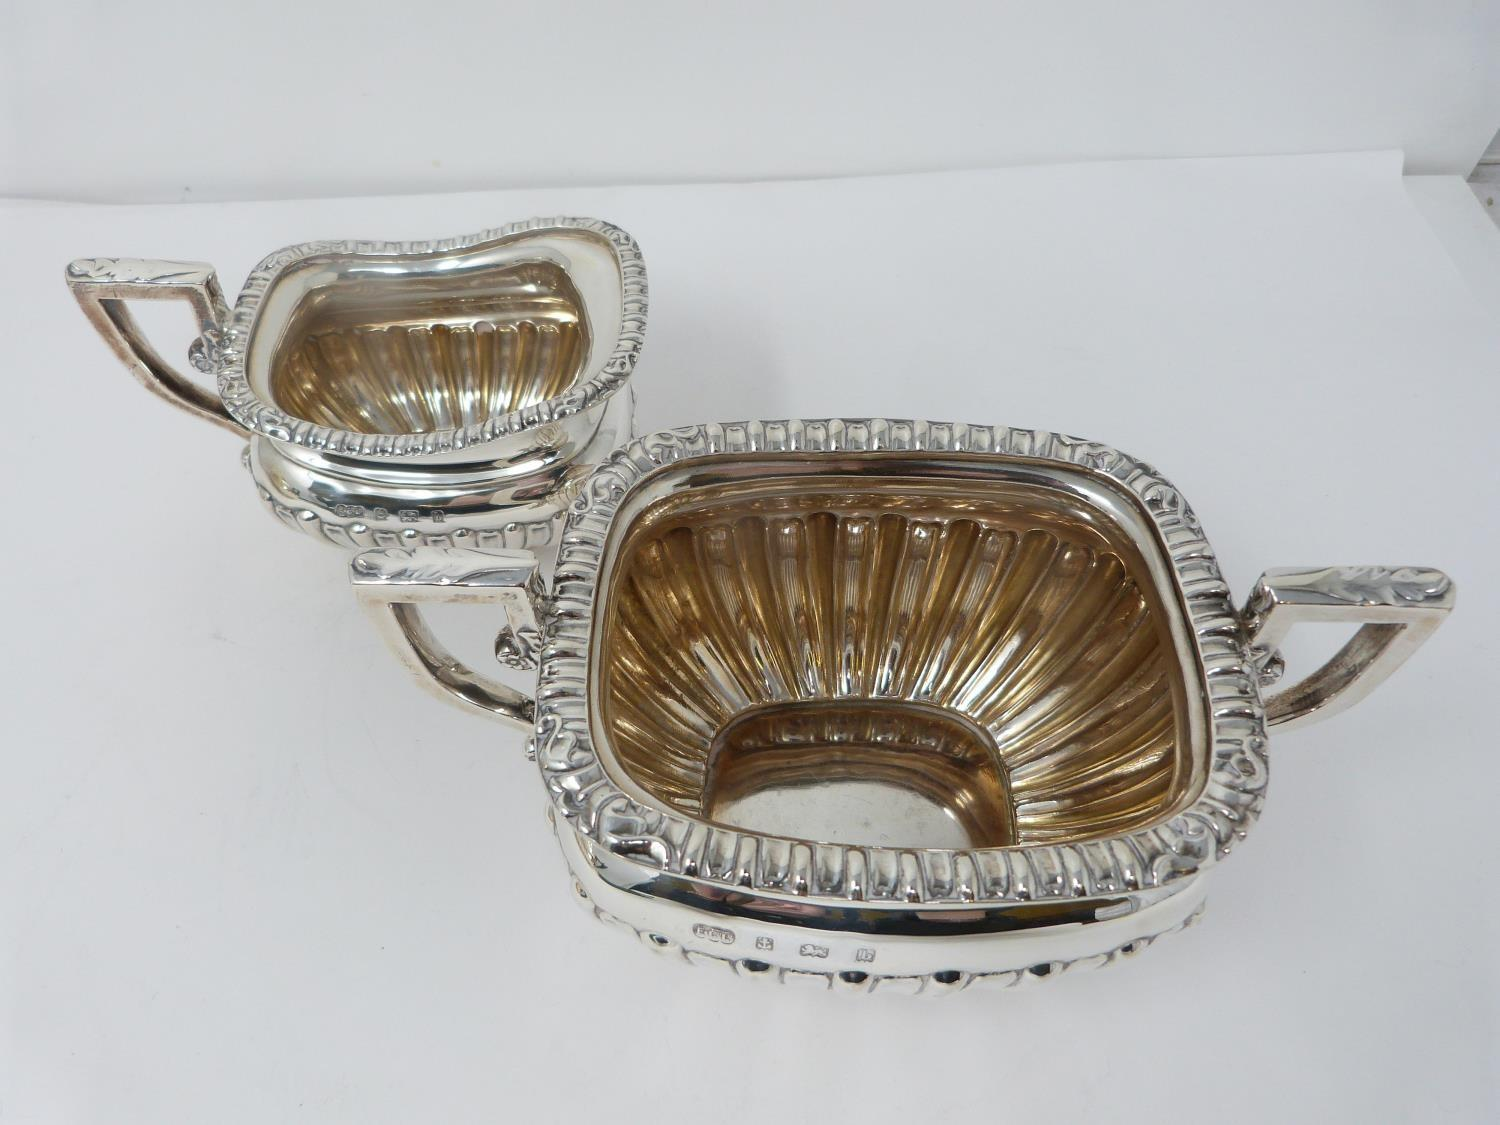 An Elkington and Co. silver three piece tea service, includes a teapot, sugar bowl and milk jug. - Image 10 of 12